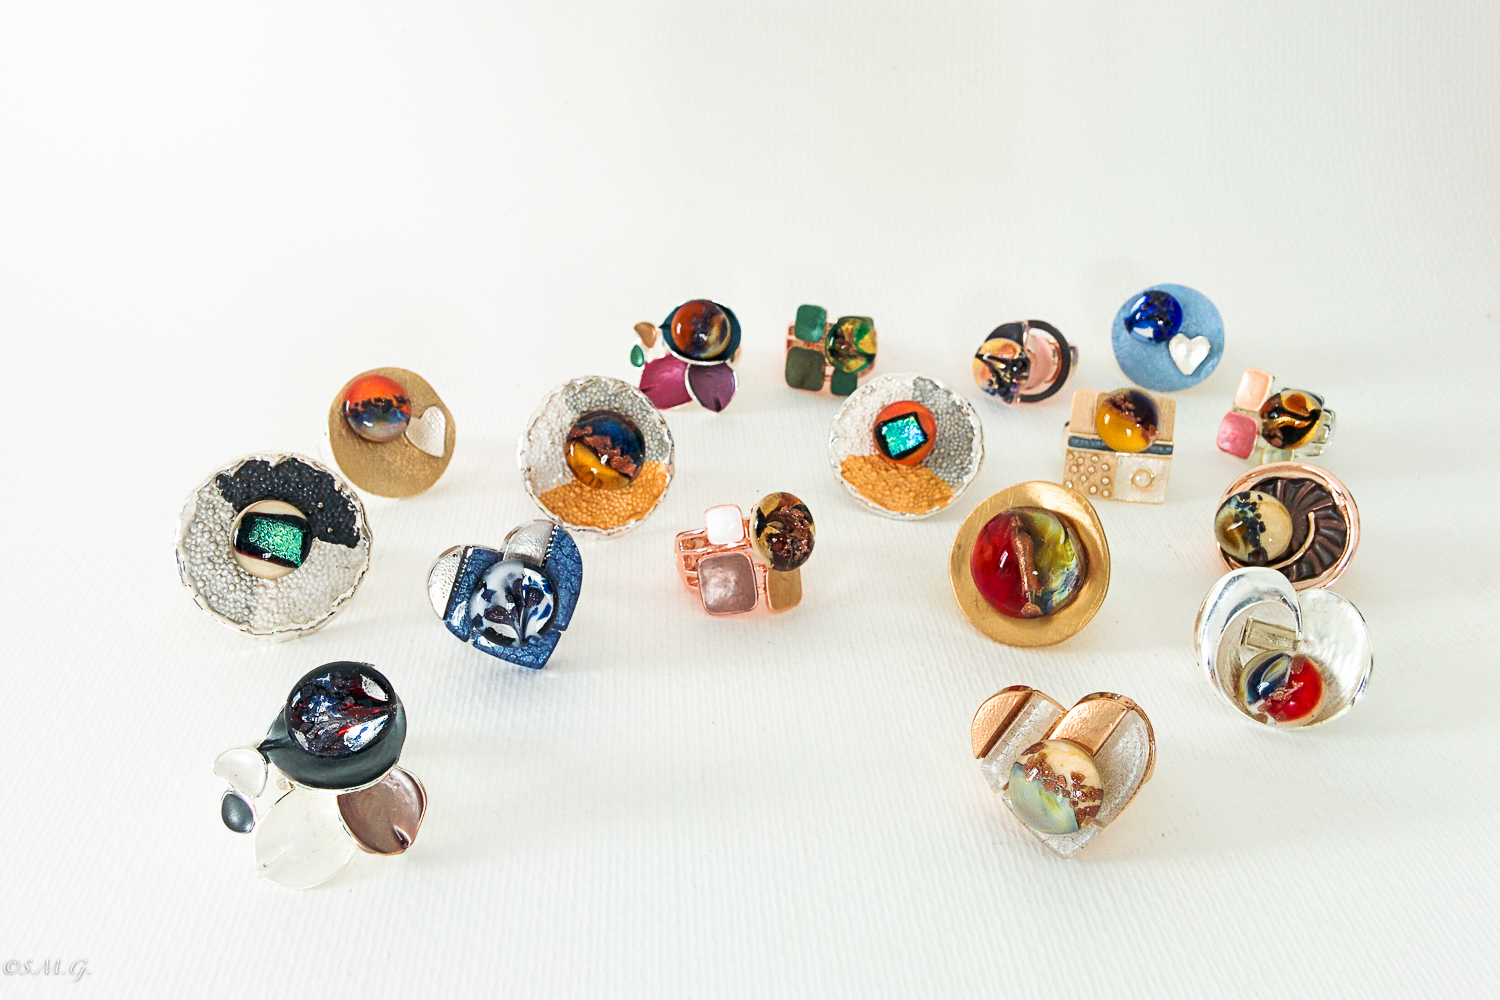 Murano Glass rings on display in a white background